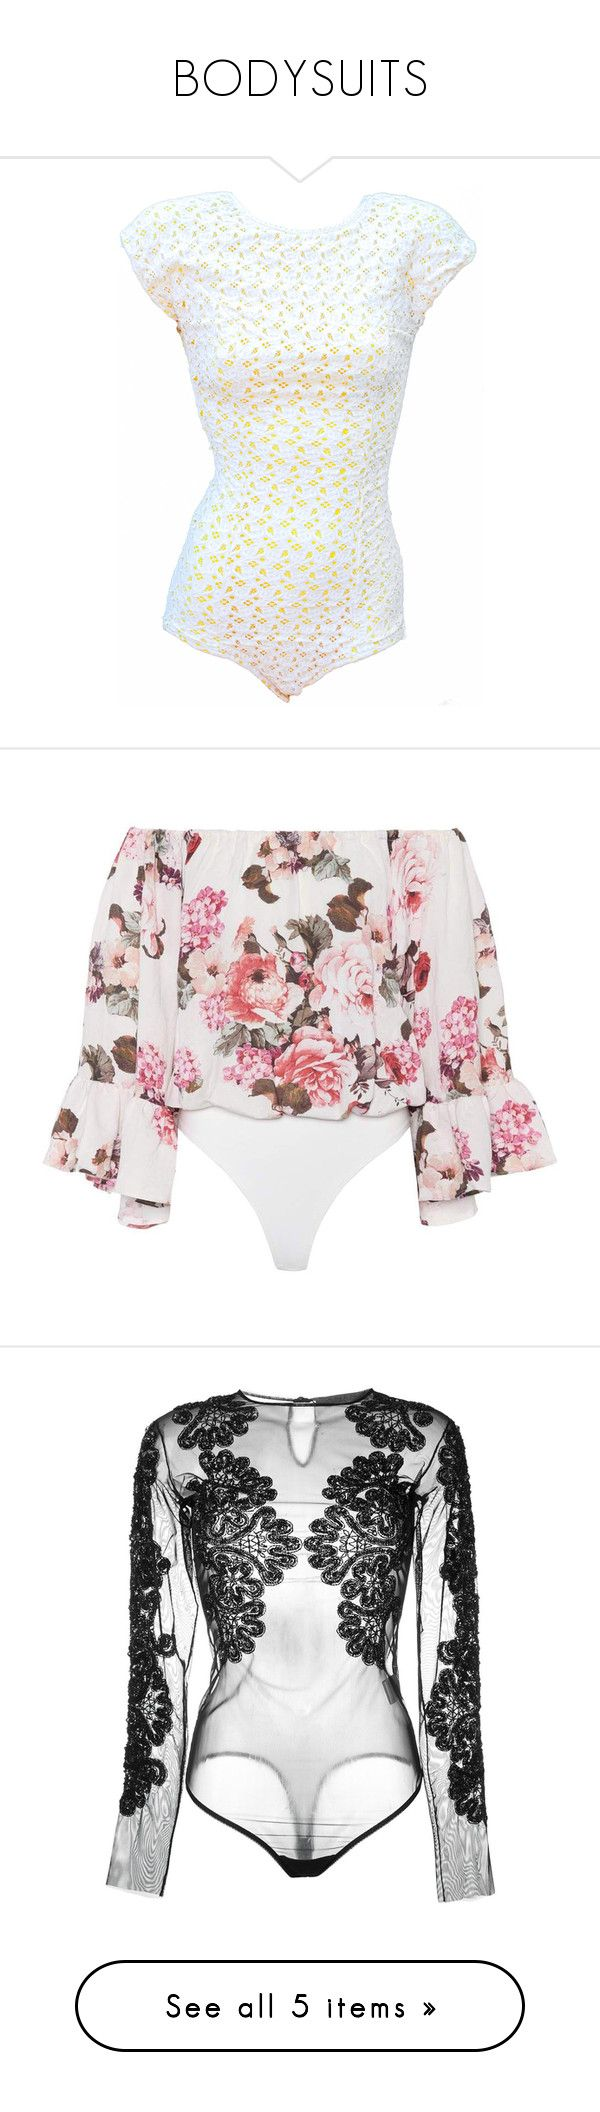 """""""BODYSUITS"""" by kareng-357 ❤ liked on Polyvore featuring swimwear, one-piece swimsuits, pin up swimsuit, lace swimsuit, yellow one piece swimsuit, one piece pinup swimsuit, lace one piece swimsuit, intimates, shapewear and bodysuits"""